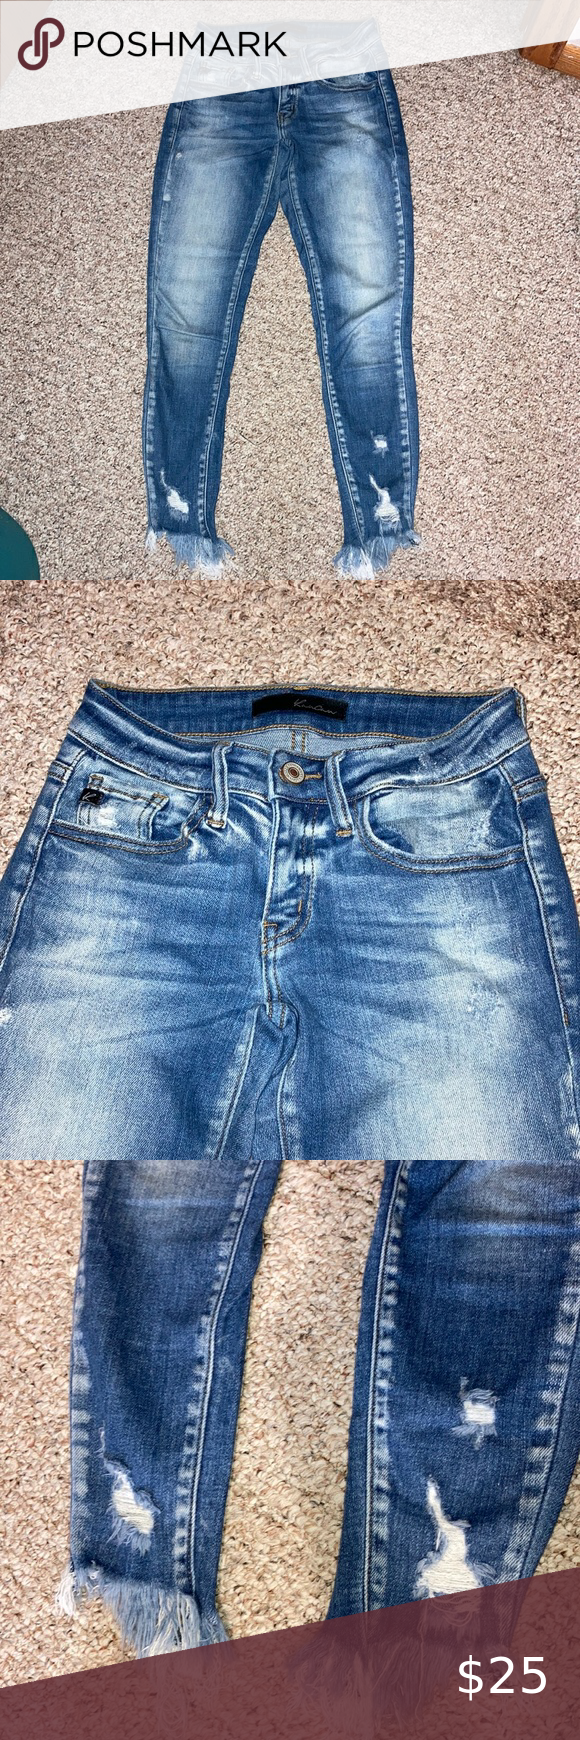 Kancan Jeans Mid Rise Jeans Things To Sell Jeans